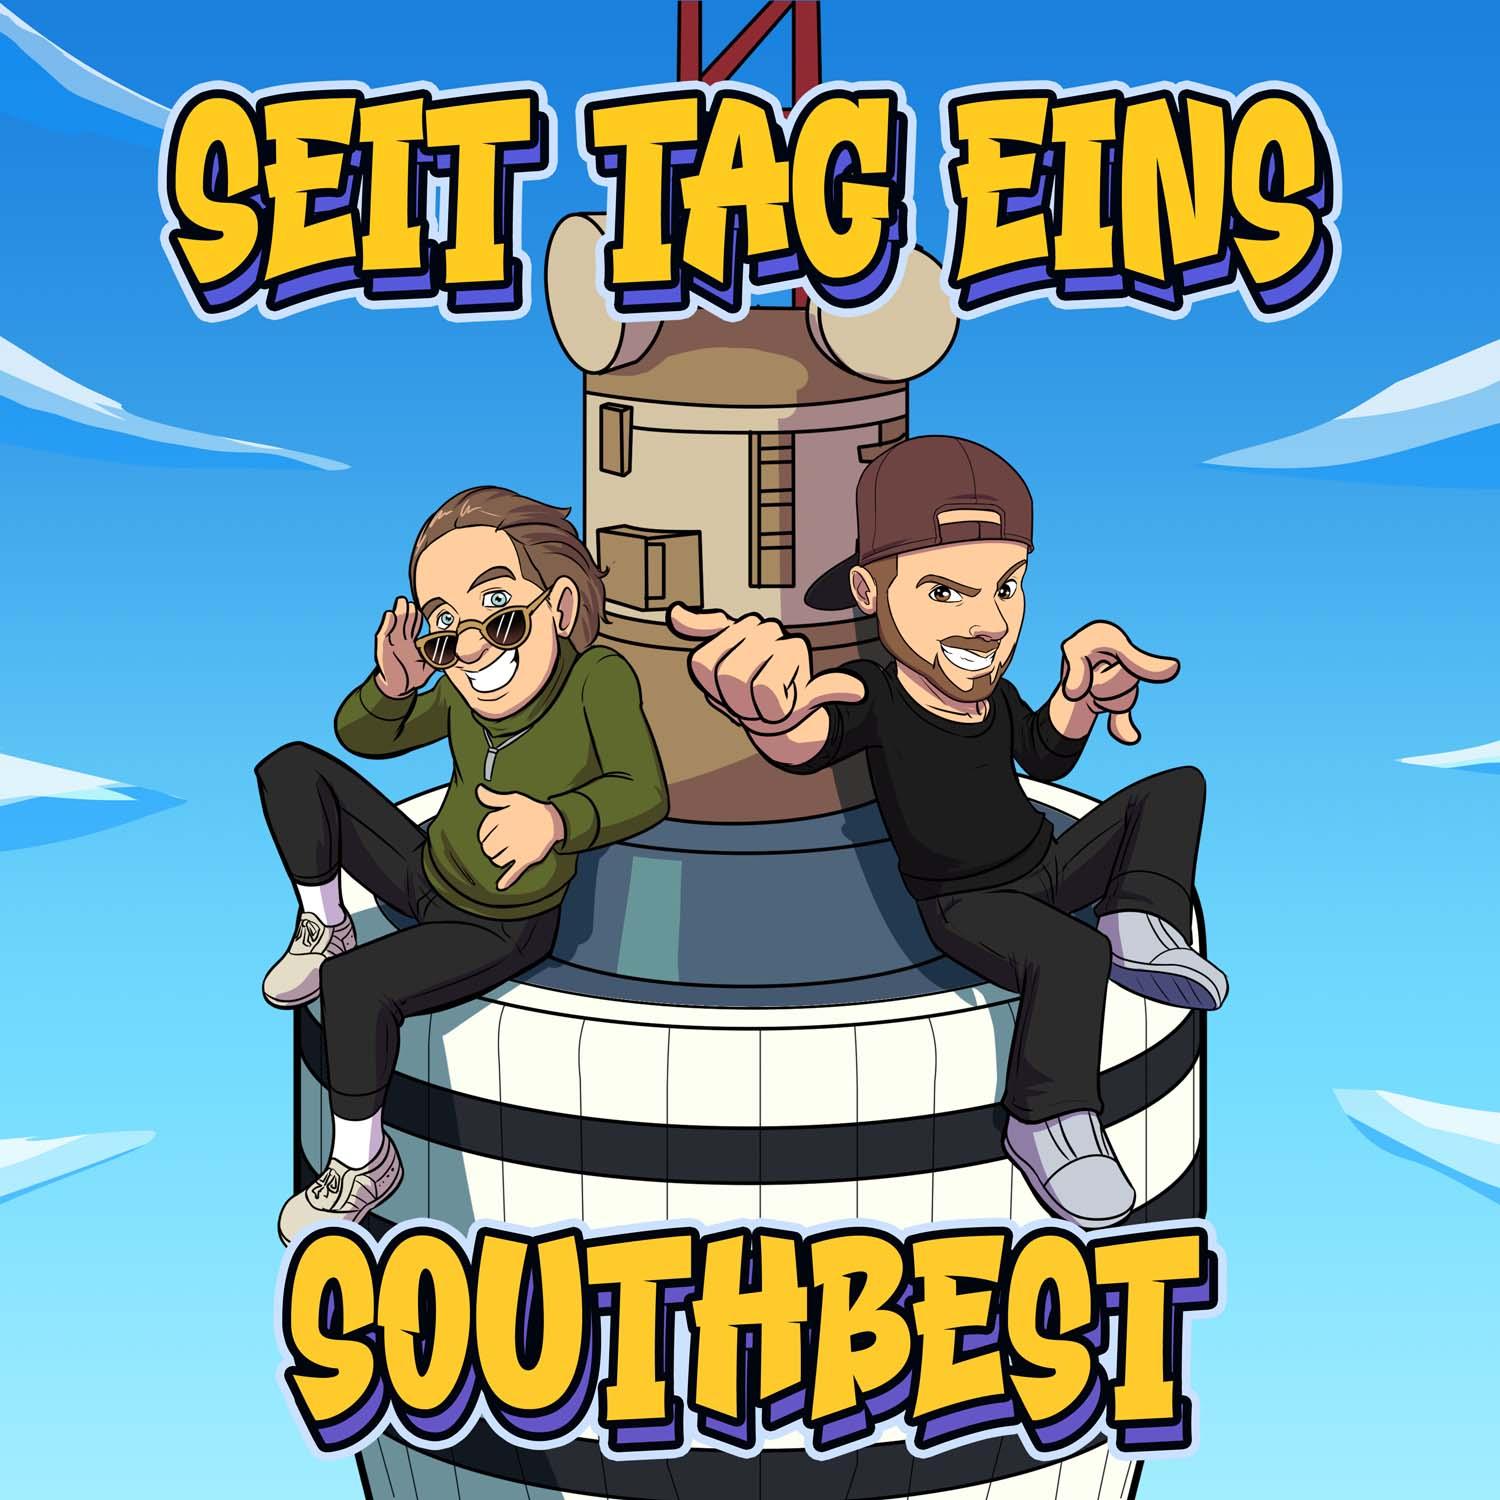 Upcoming: Southbest - Seit Tag Eins